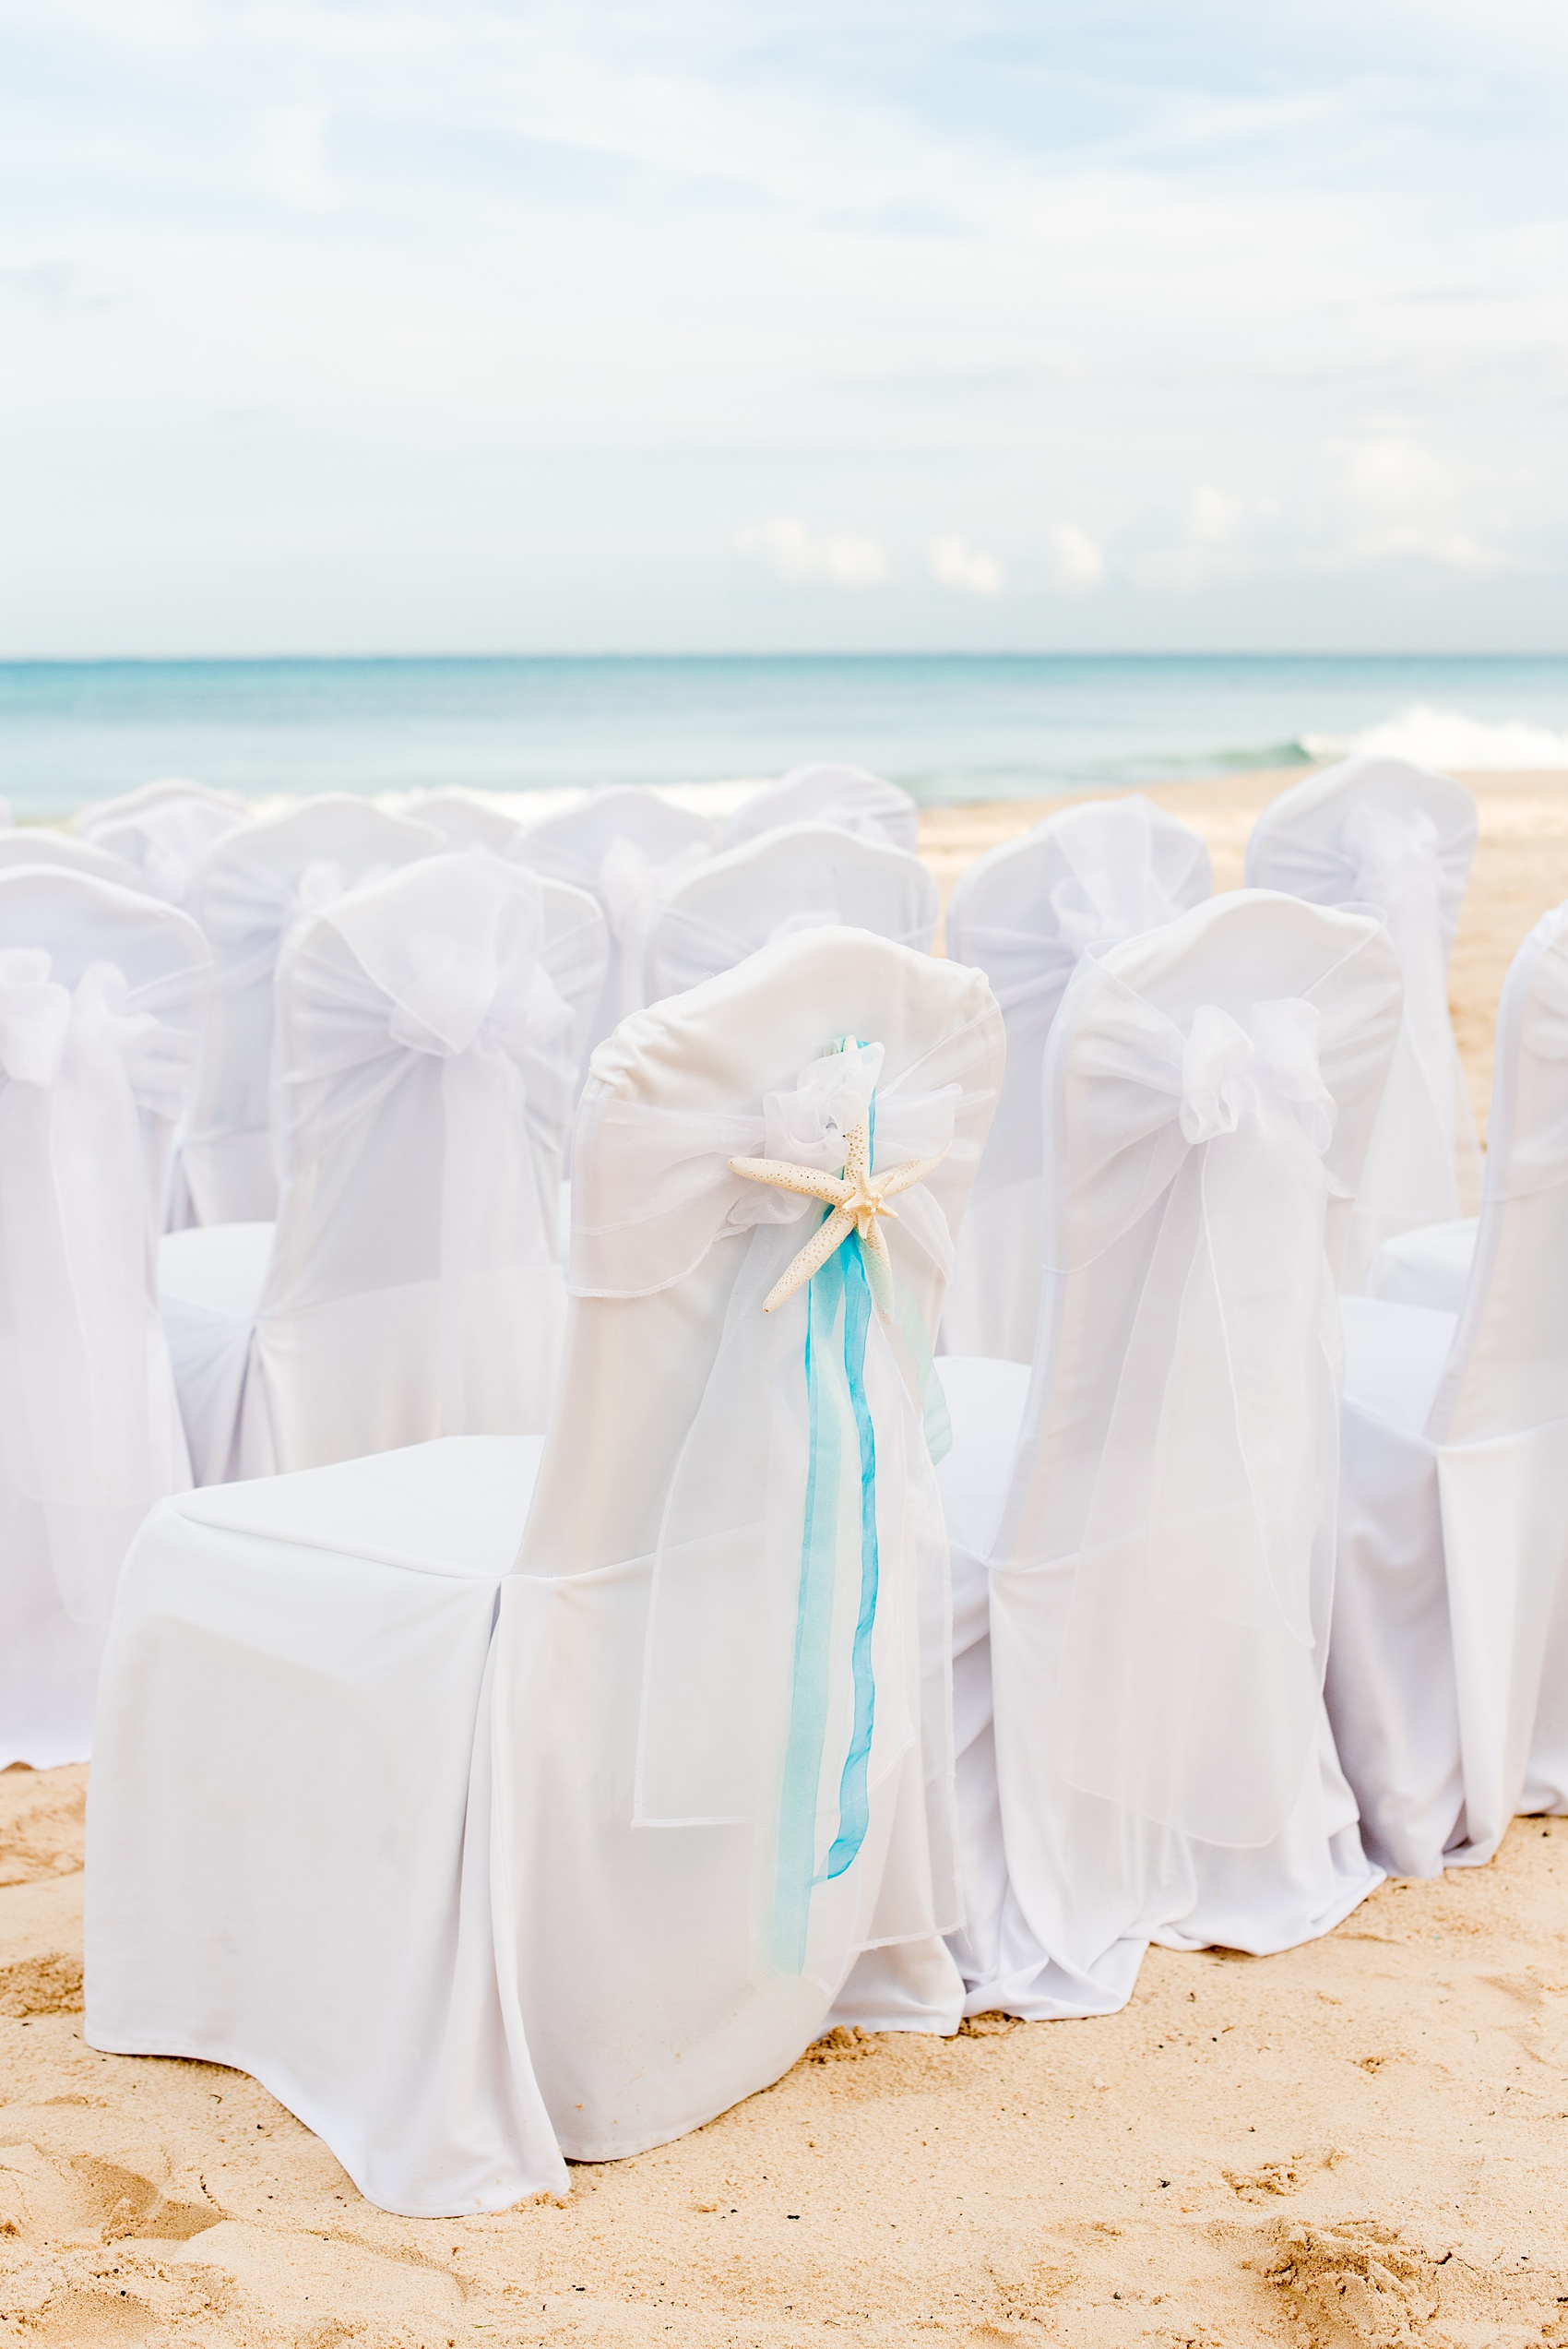 Mikkel Paige Photography photos from a wedding at Grand Paraiso, Mexico, Playa del Carmen Iberostar resort. Picture of the white chairs for the beach ceremony with a starfish and ribbon detail.